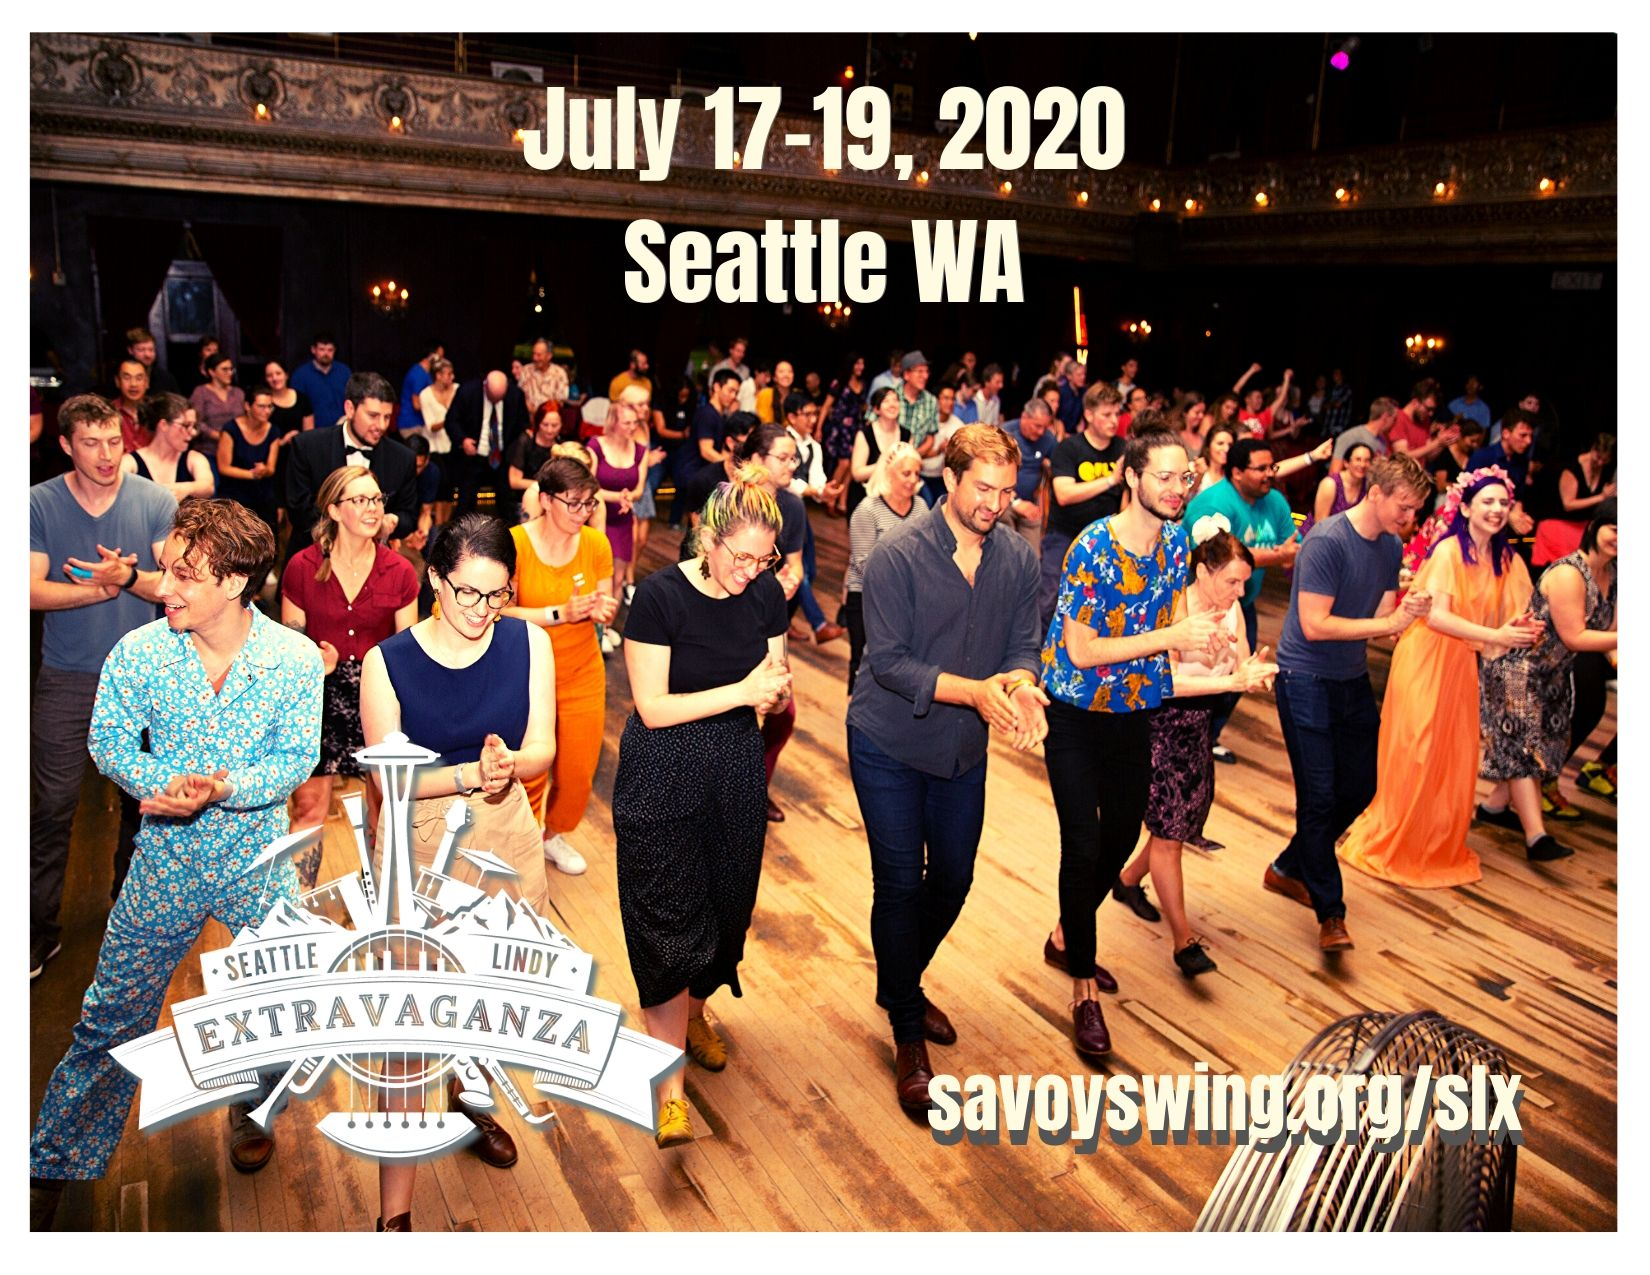 Seattle Lindy Extravaganza 2020 - July 17-29, Seattle WA